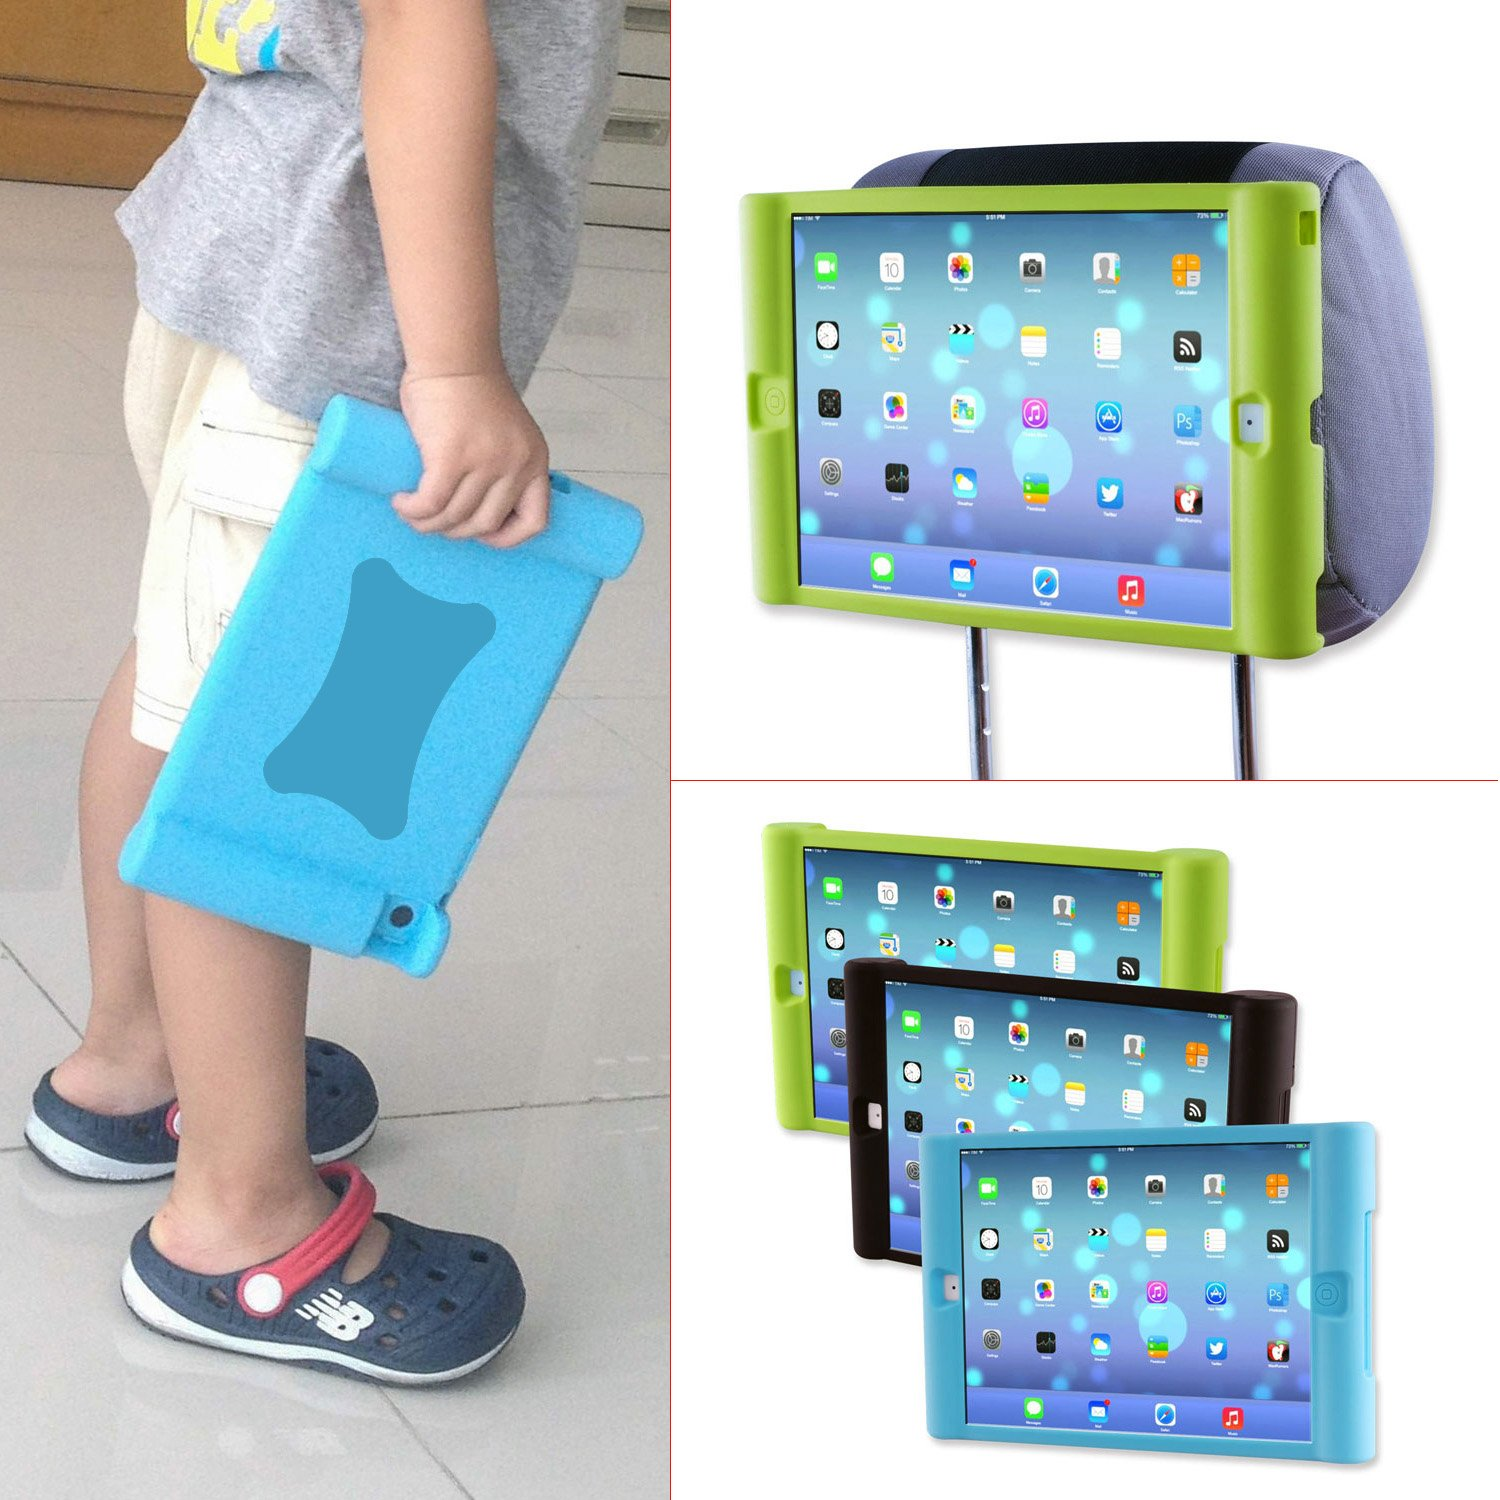 TFY Kids Car Headrest Mount Holder for iPad Air (iPad 5 5th Generation) - Detachable Lightweight Shockproof Anti-slip Soft Silicone Handle Case - Blue (Do NOT fit iPad Air 2)